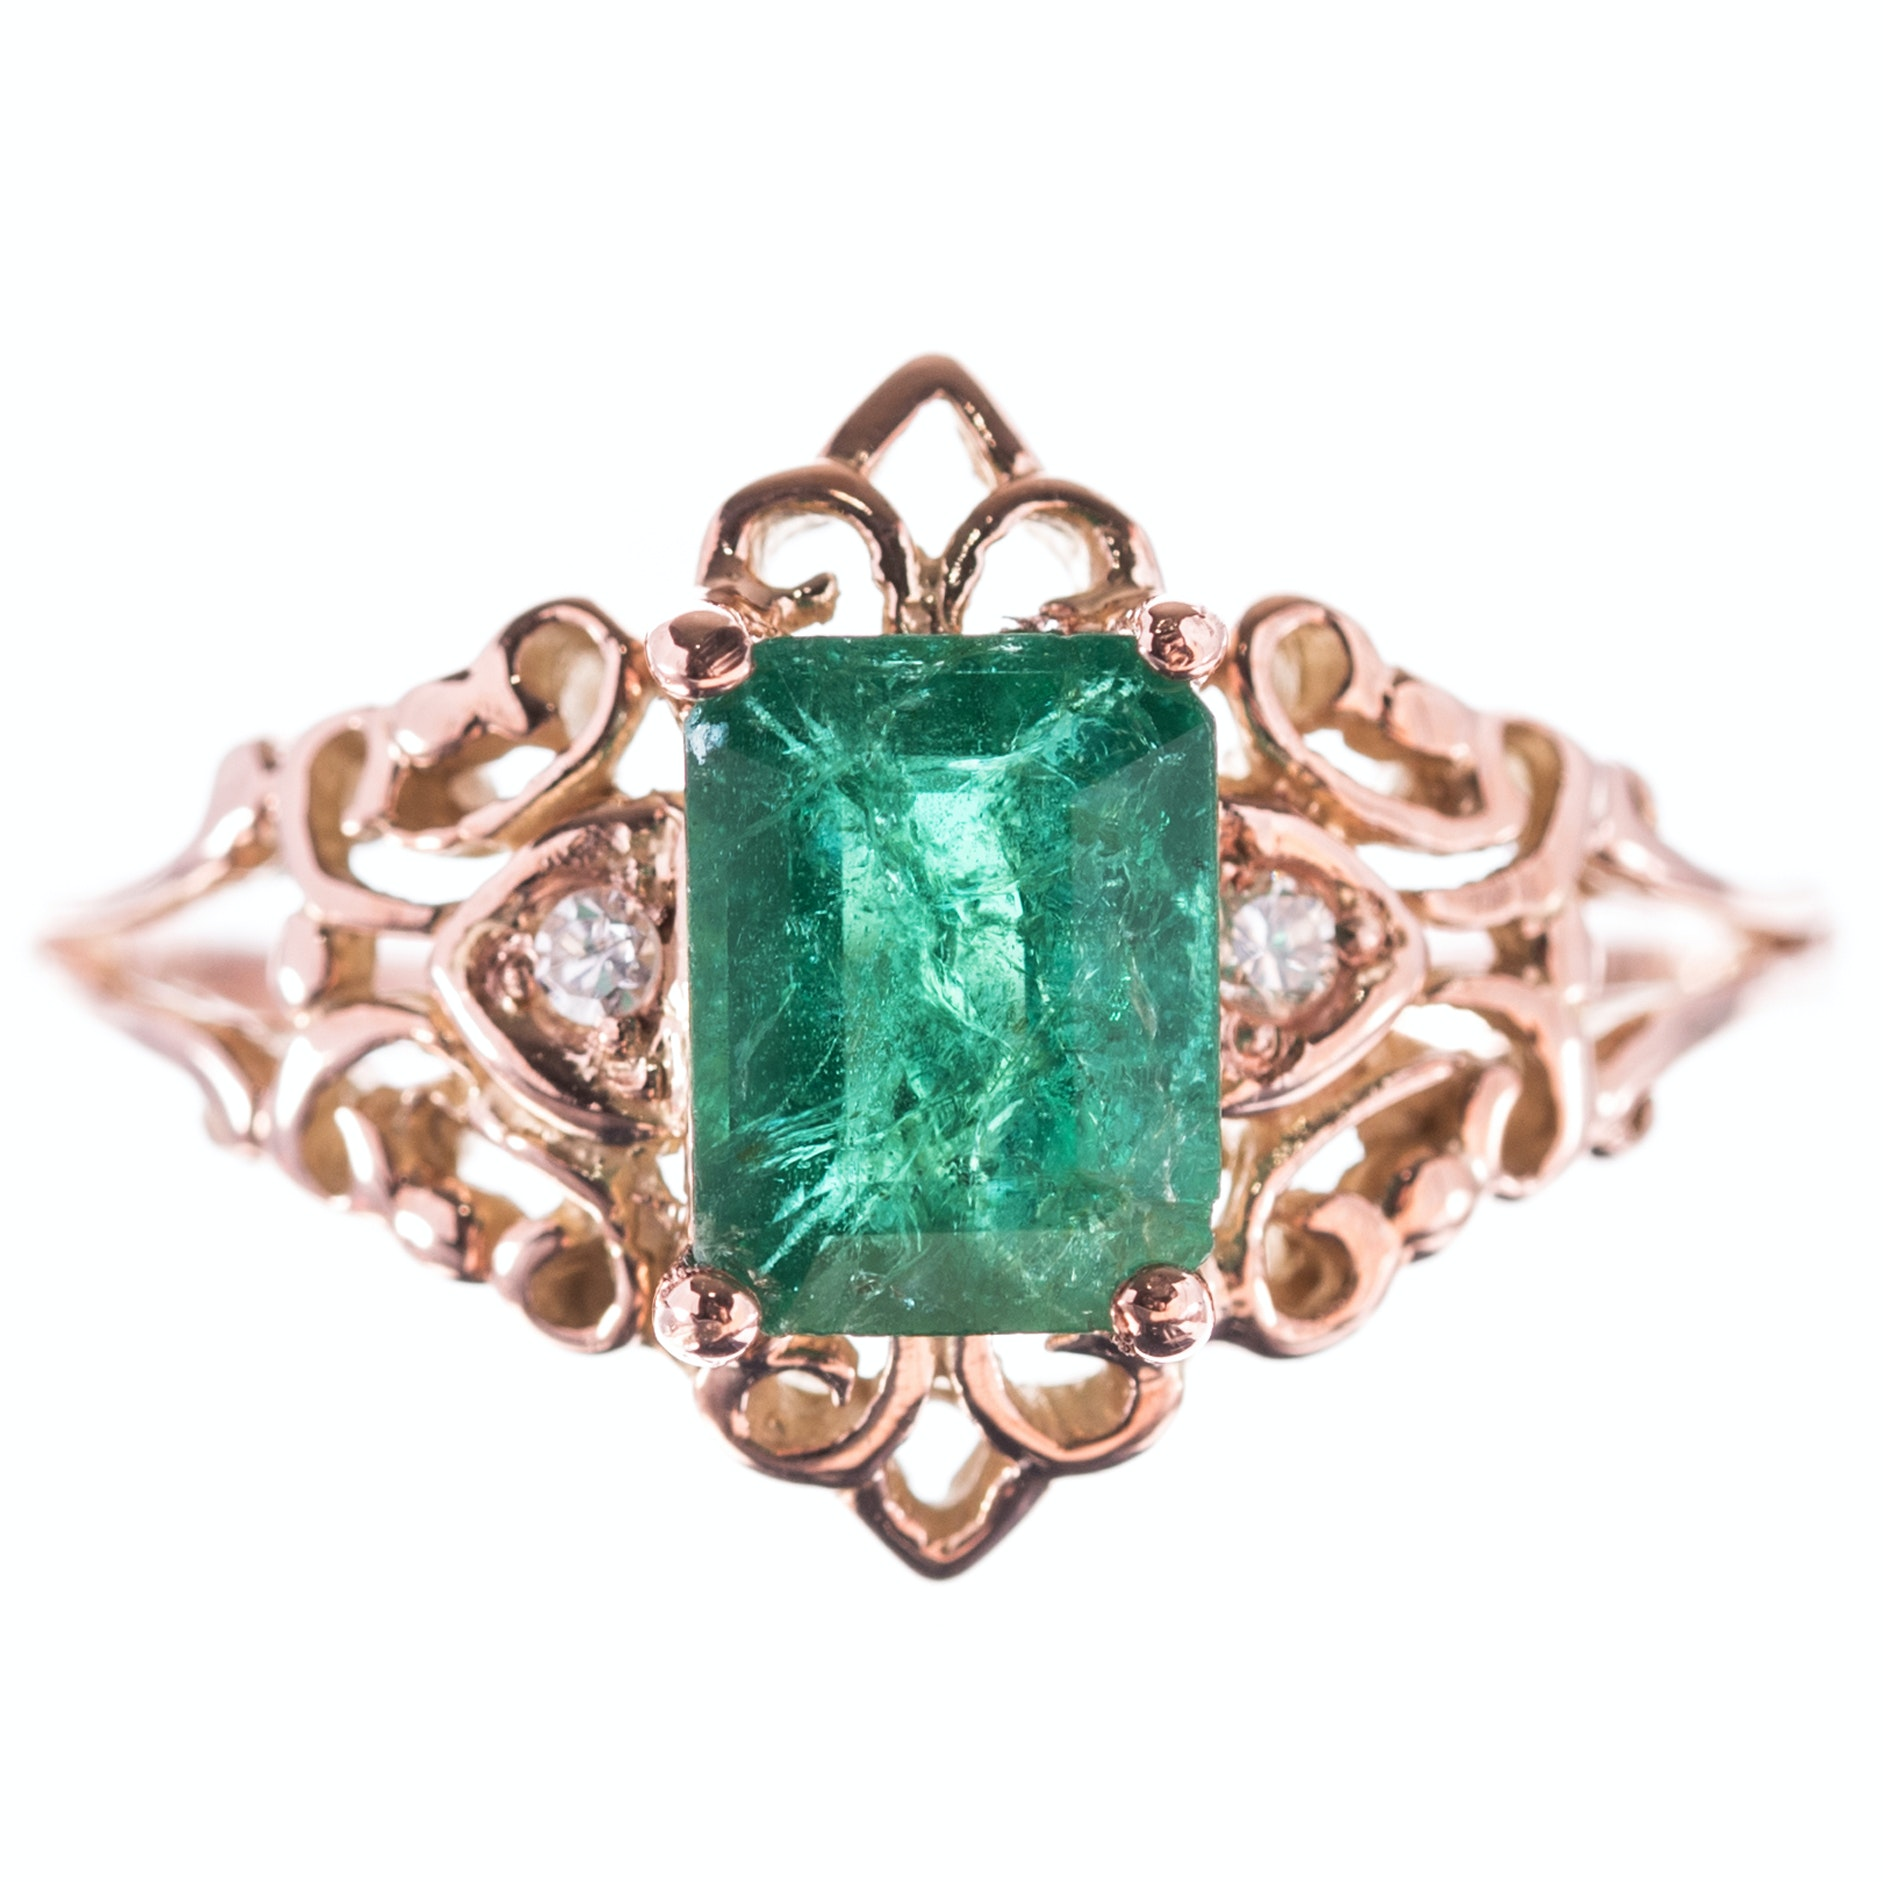 10K Yellow Gold 1.10 CT Emerald and Diamond Ring